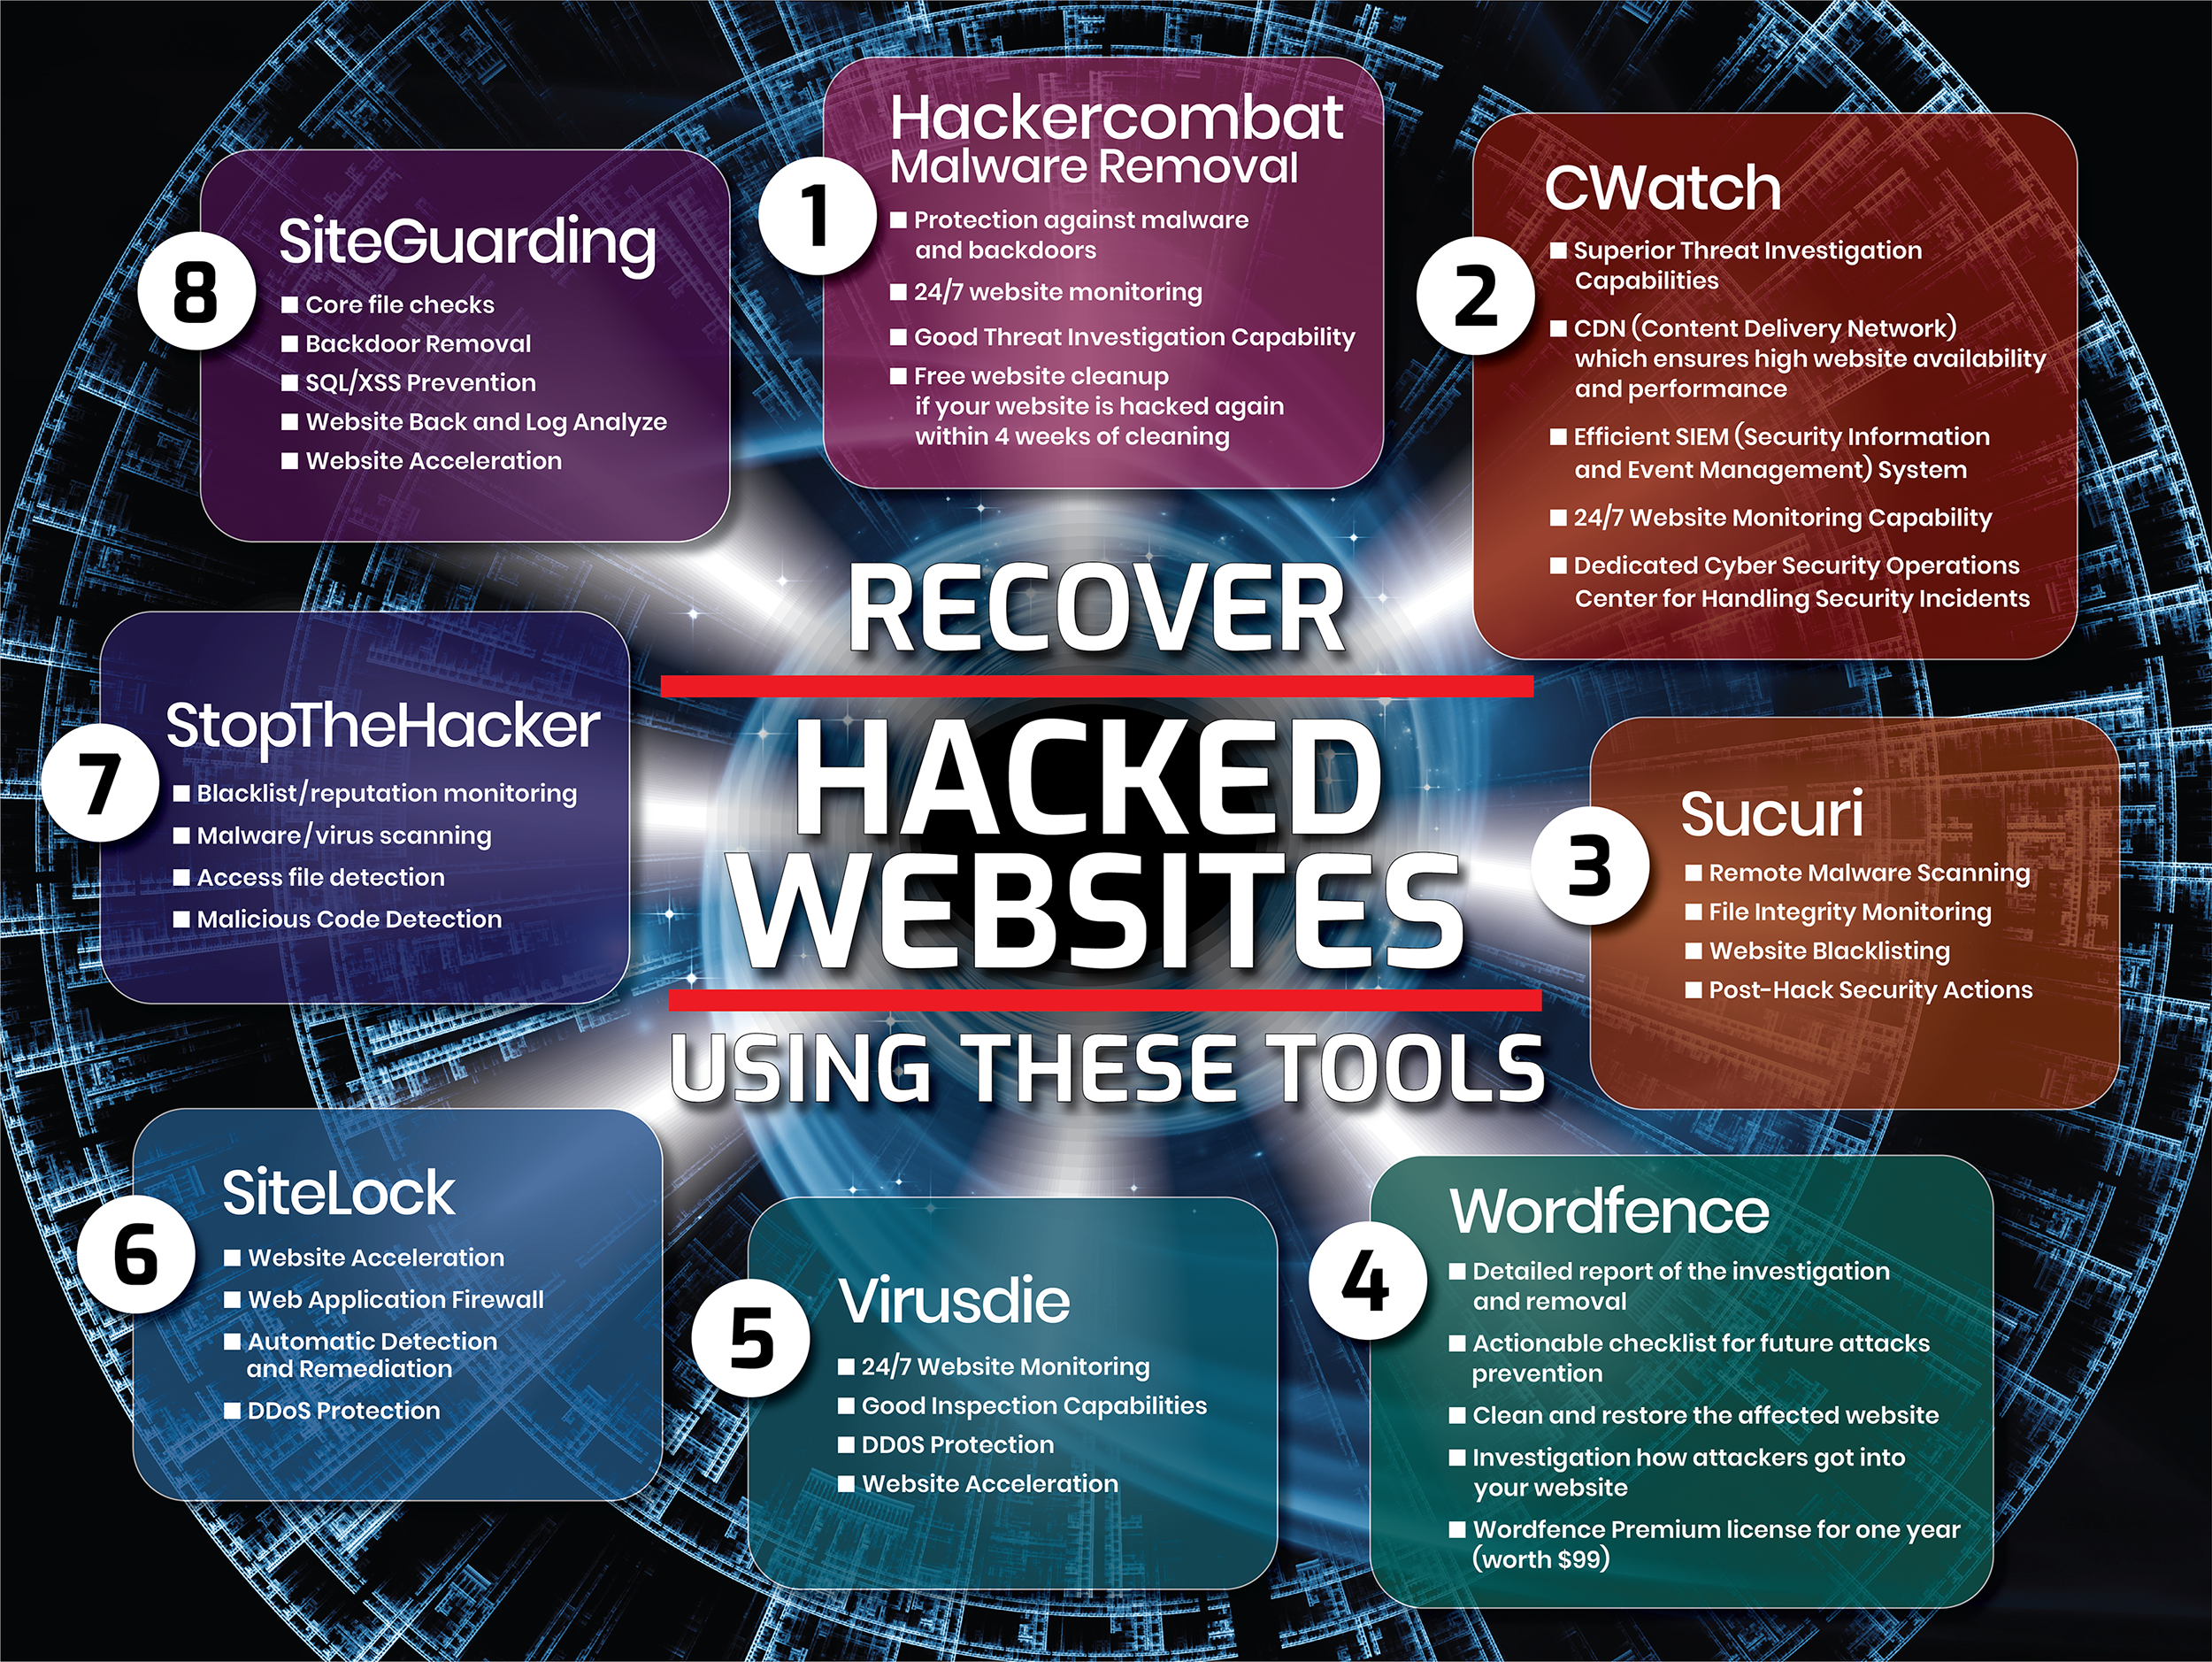 Tools and Tips to recover a Hacked Website [Infographic]